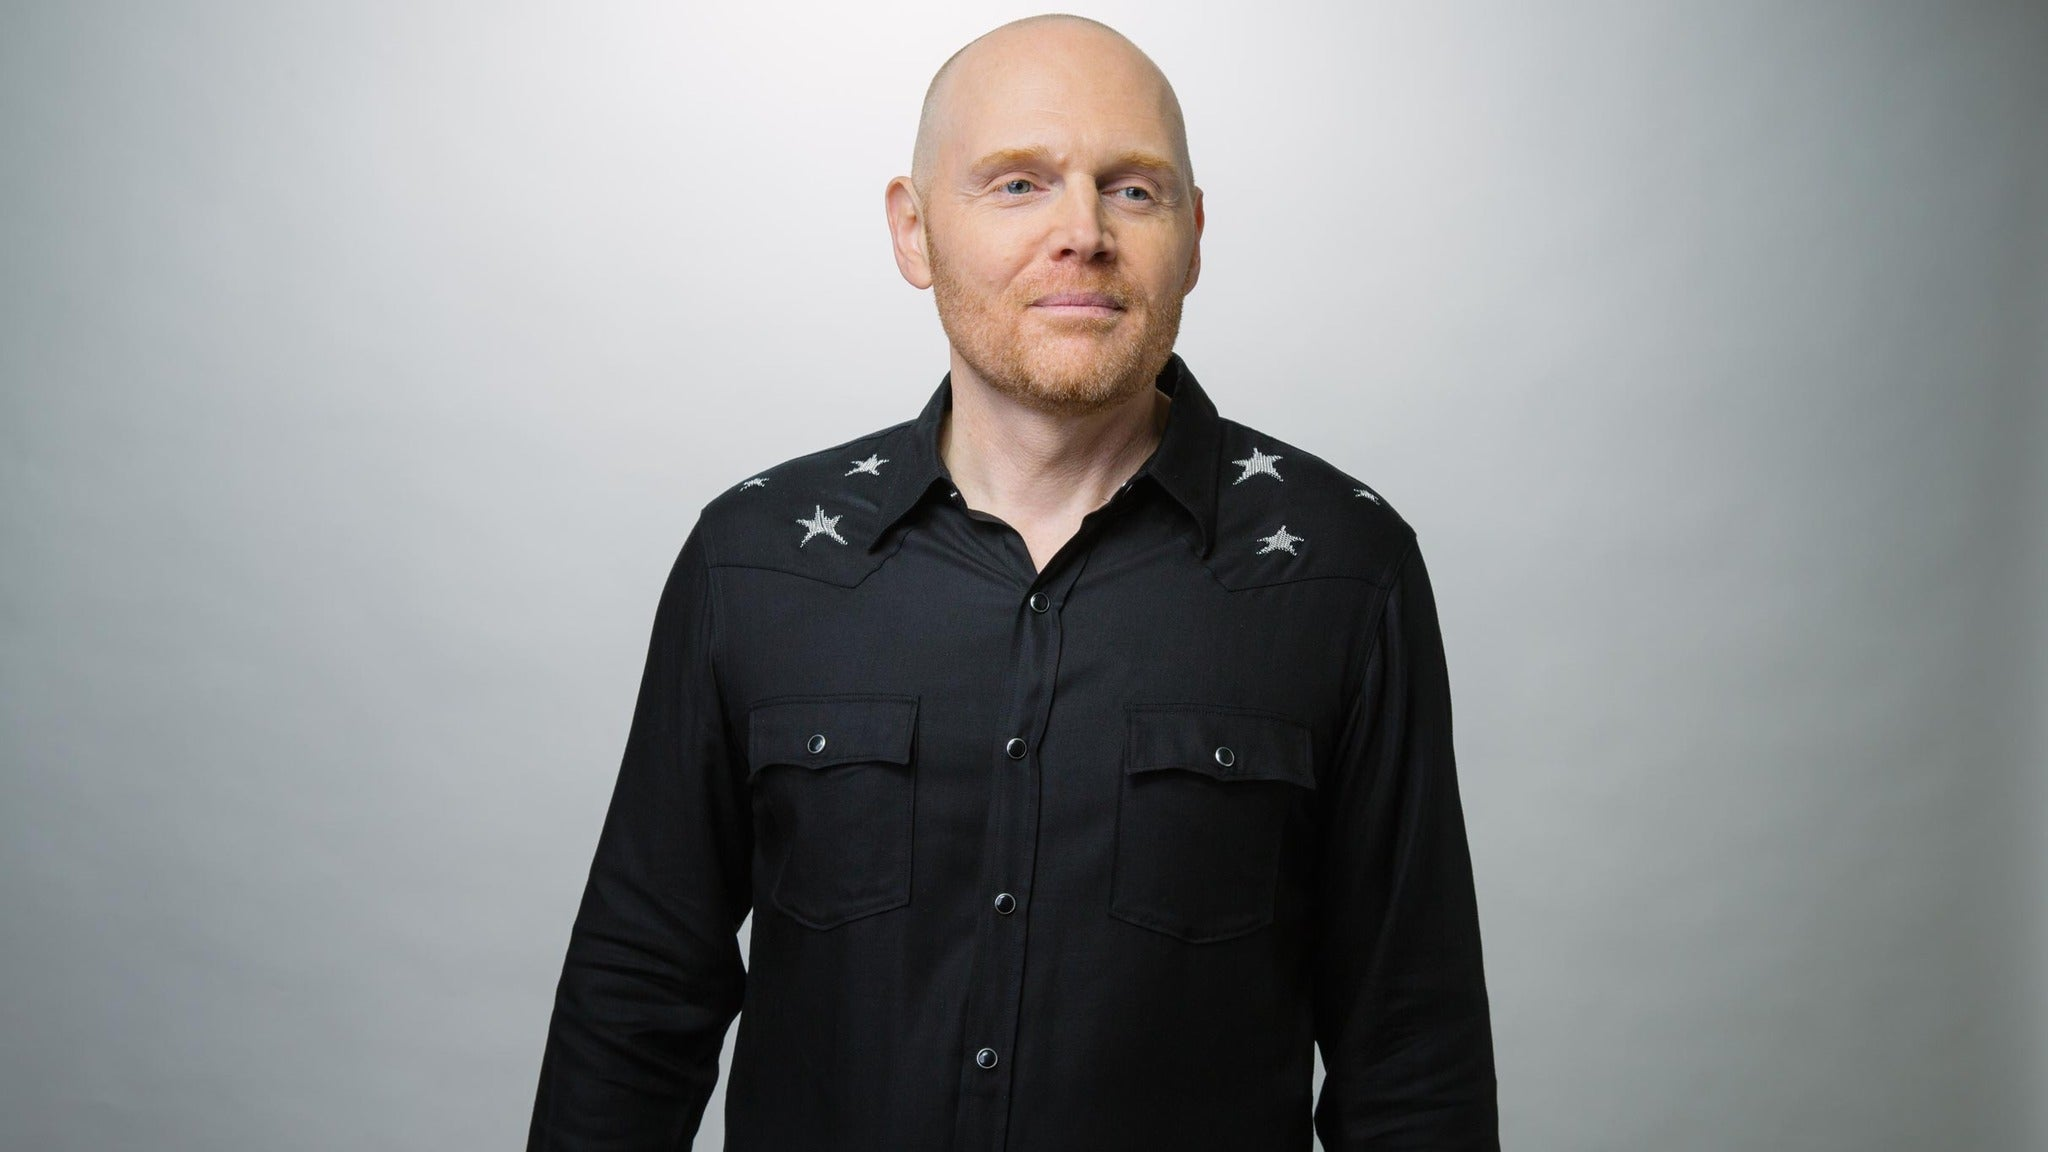 Bill Burr Live at Harrah's Resort SoCal - The Events Center